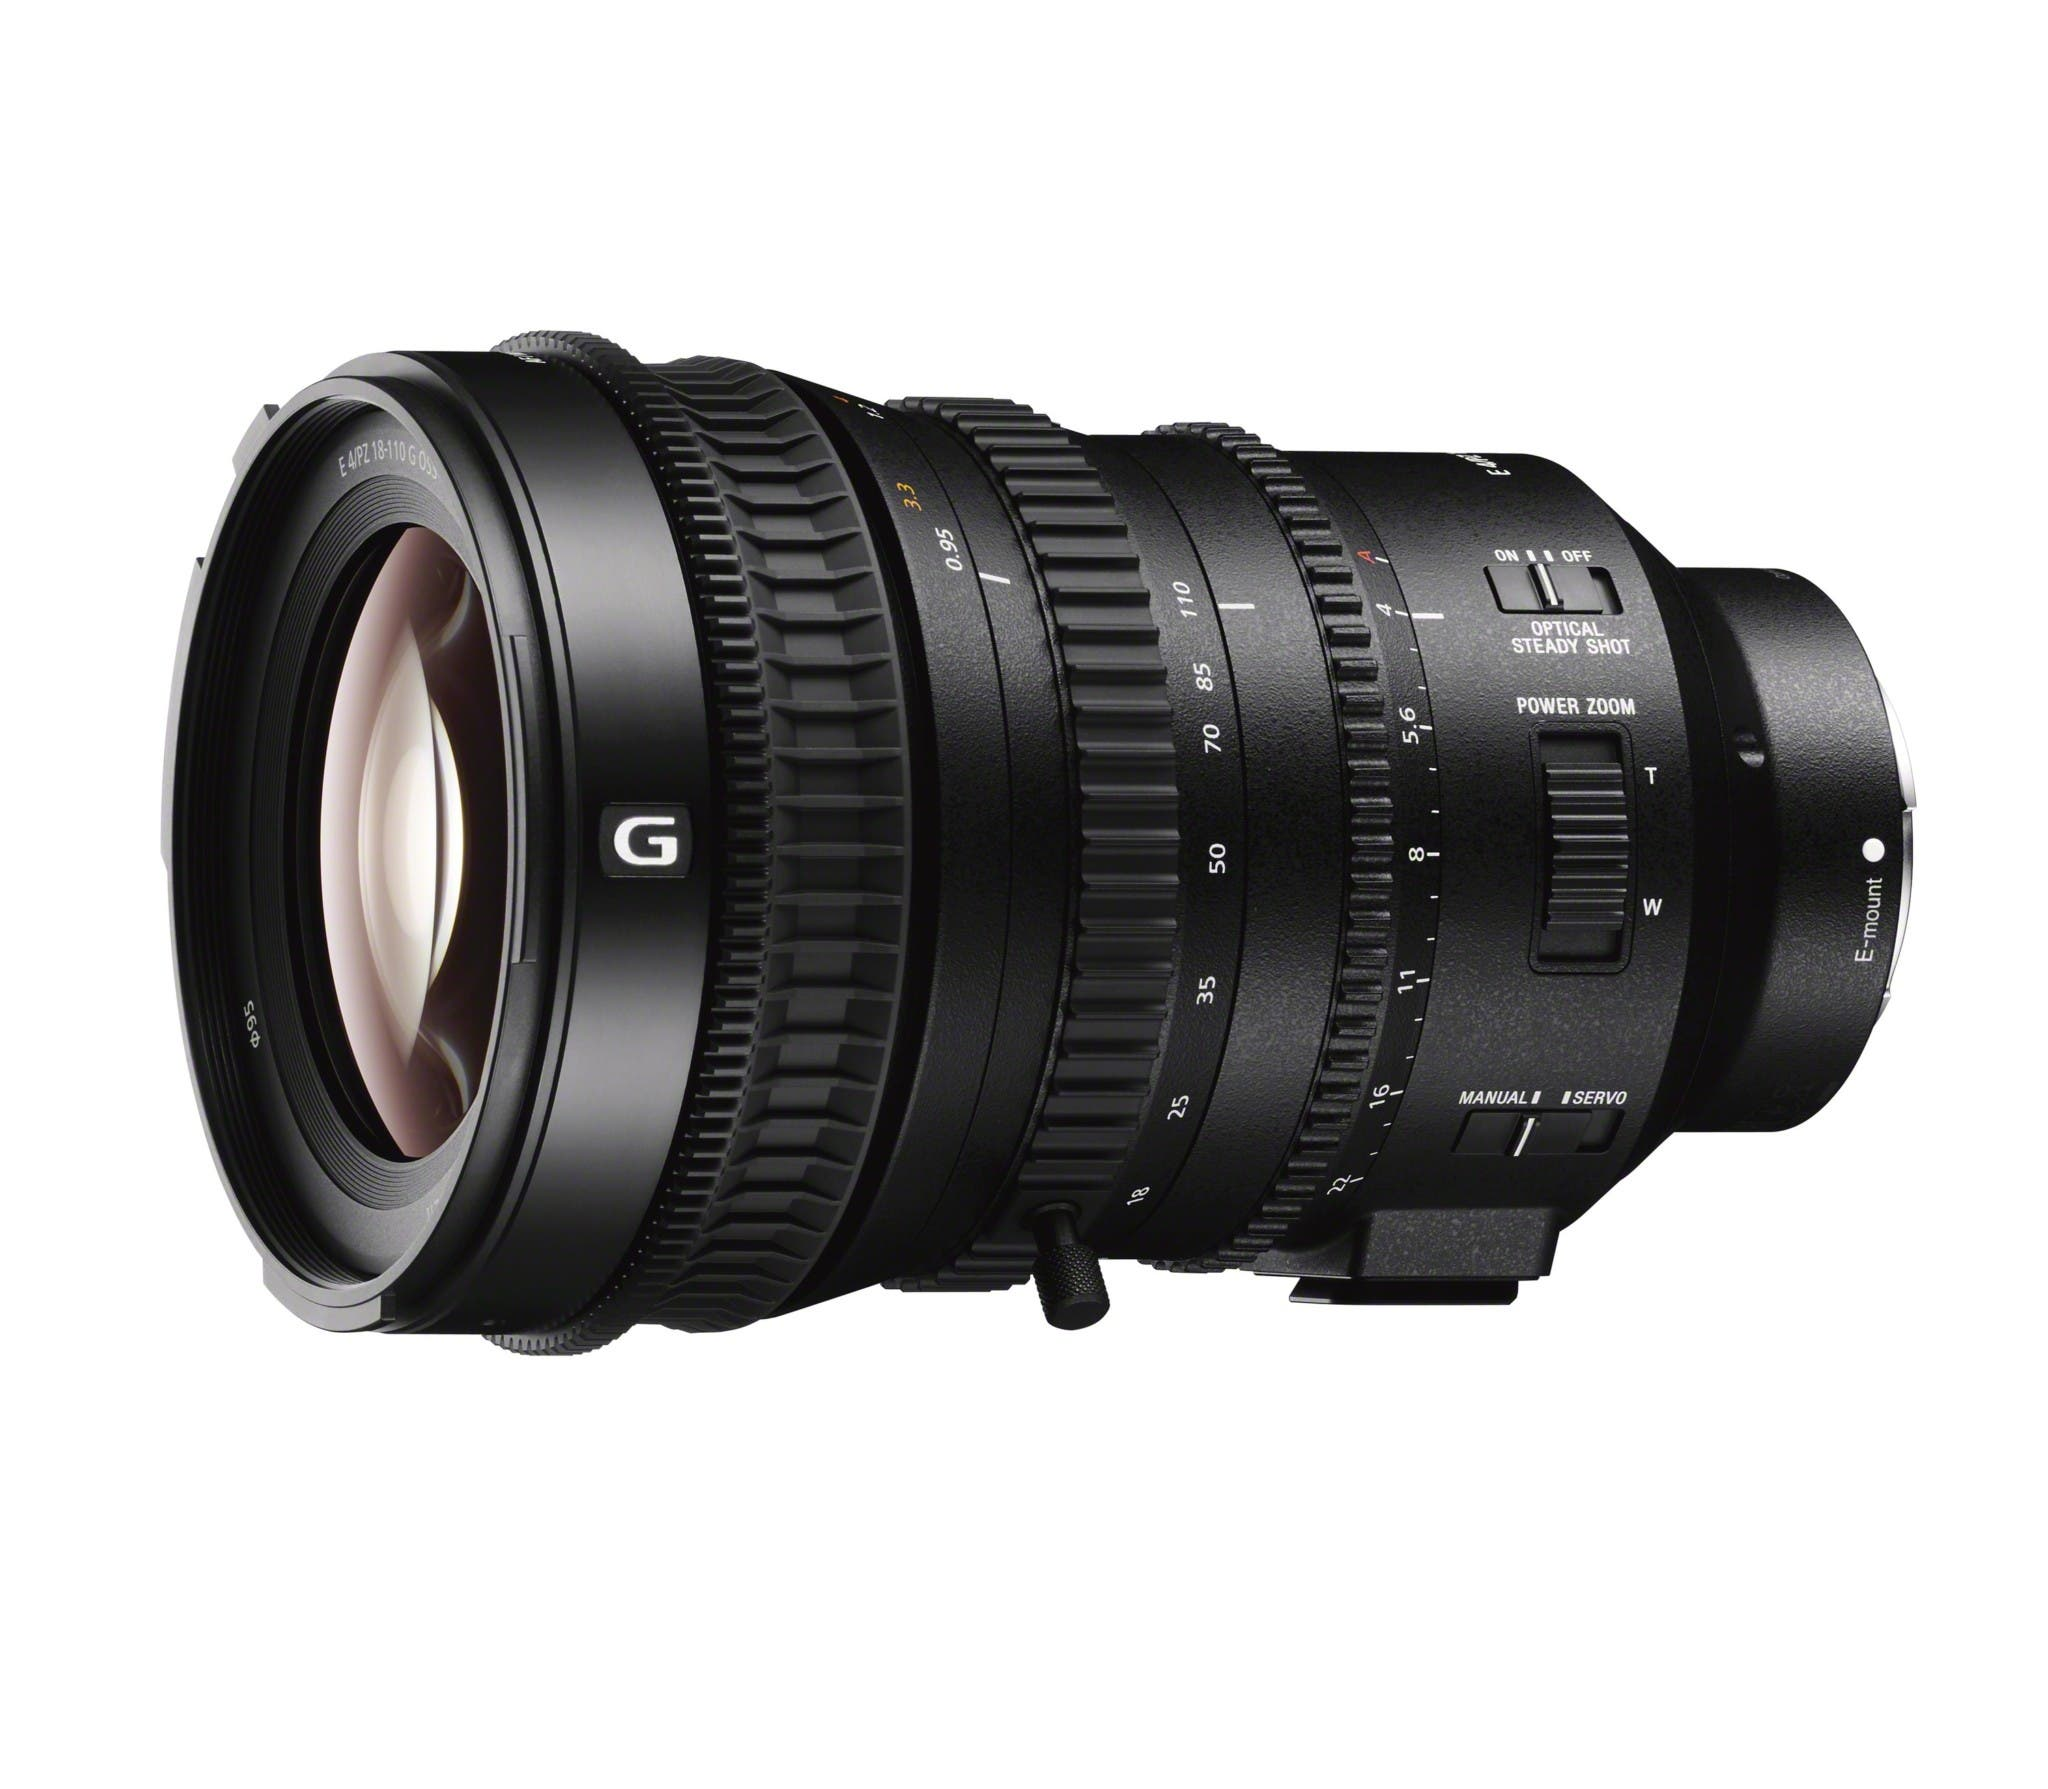 New Sony 18-110mm F/4 Offers Extreme Versatility at an Extreme Price